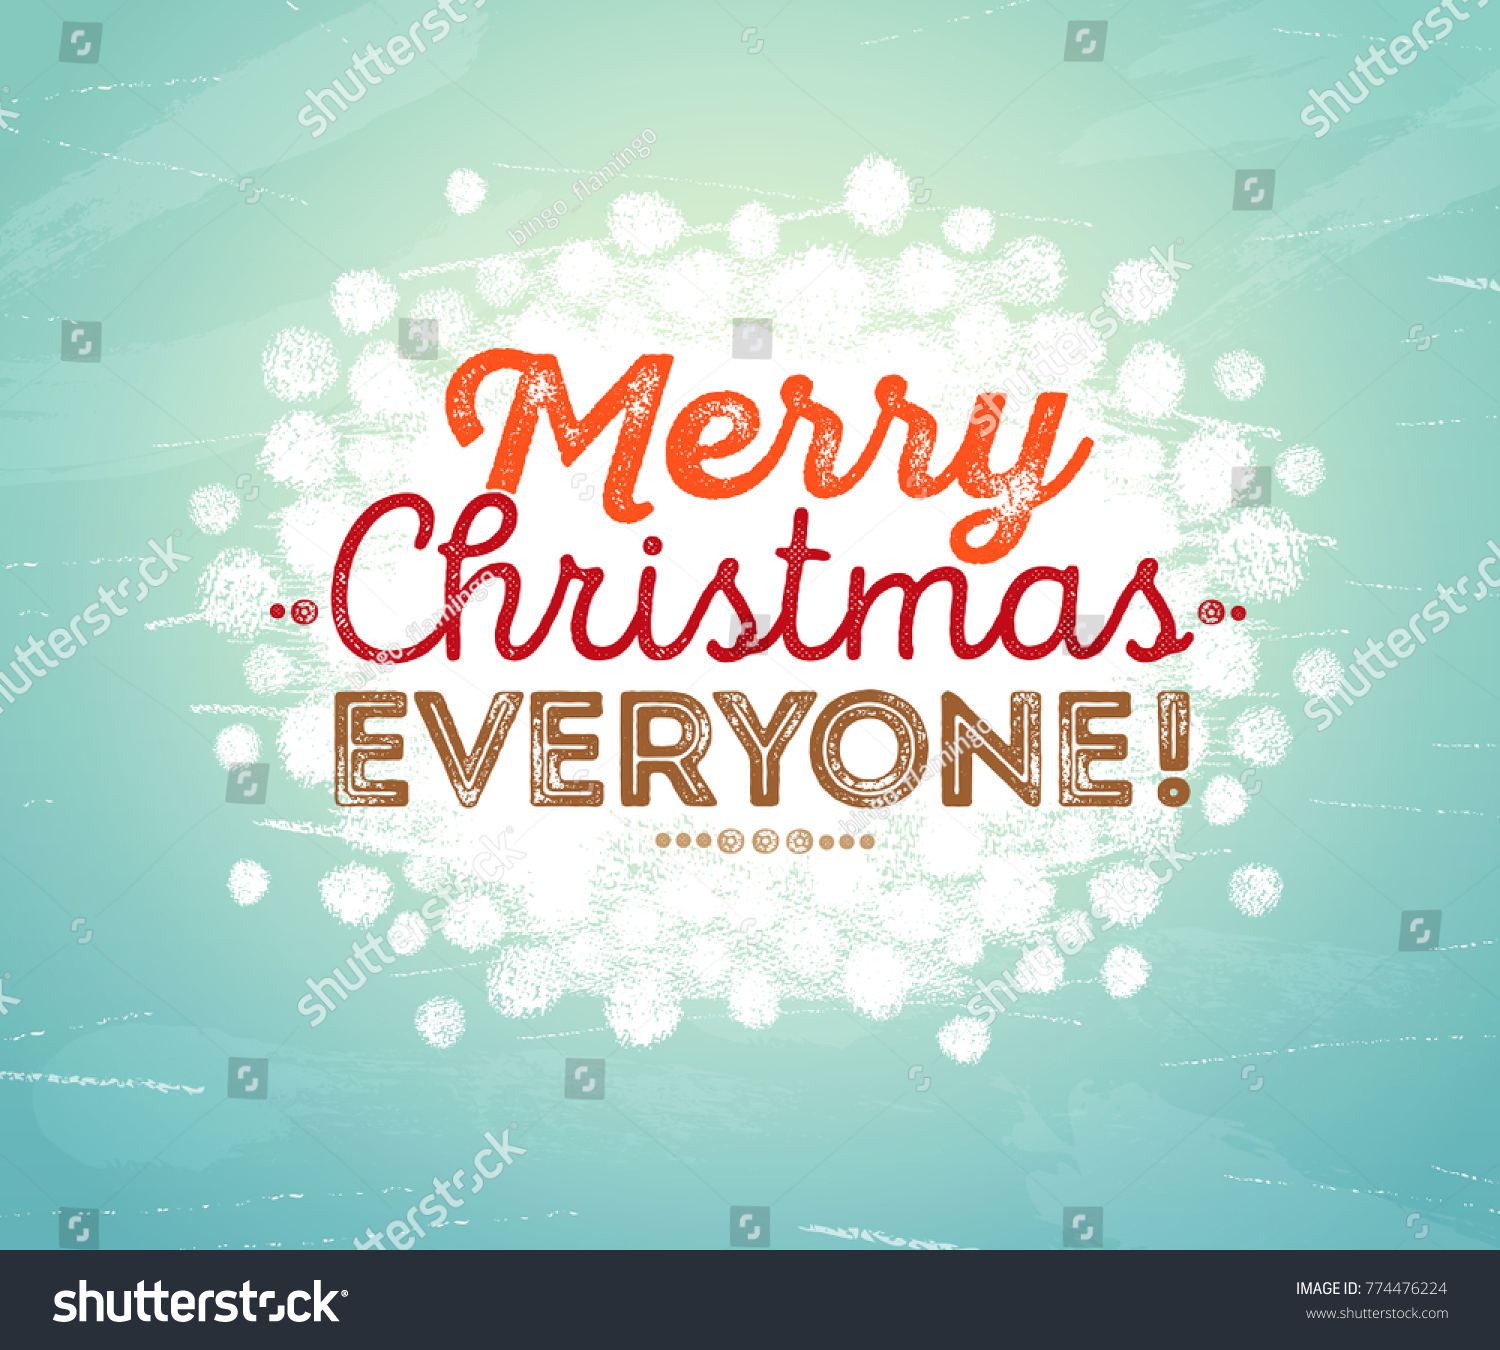 Merry Christmas Everyone Inscription Hand Painted Stock Vector ...